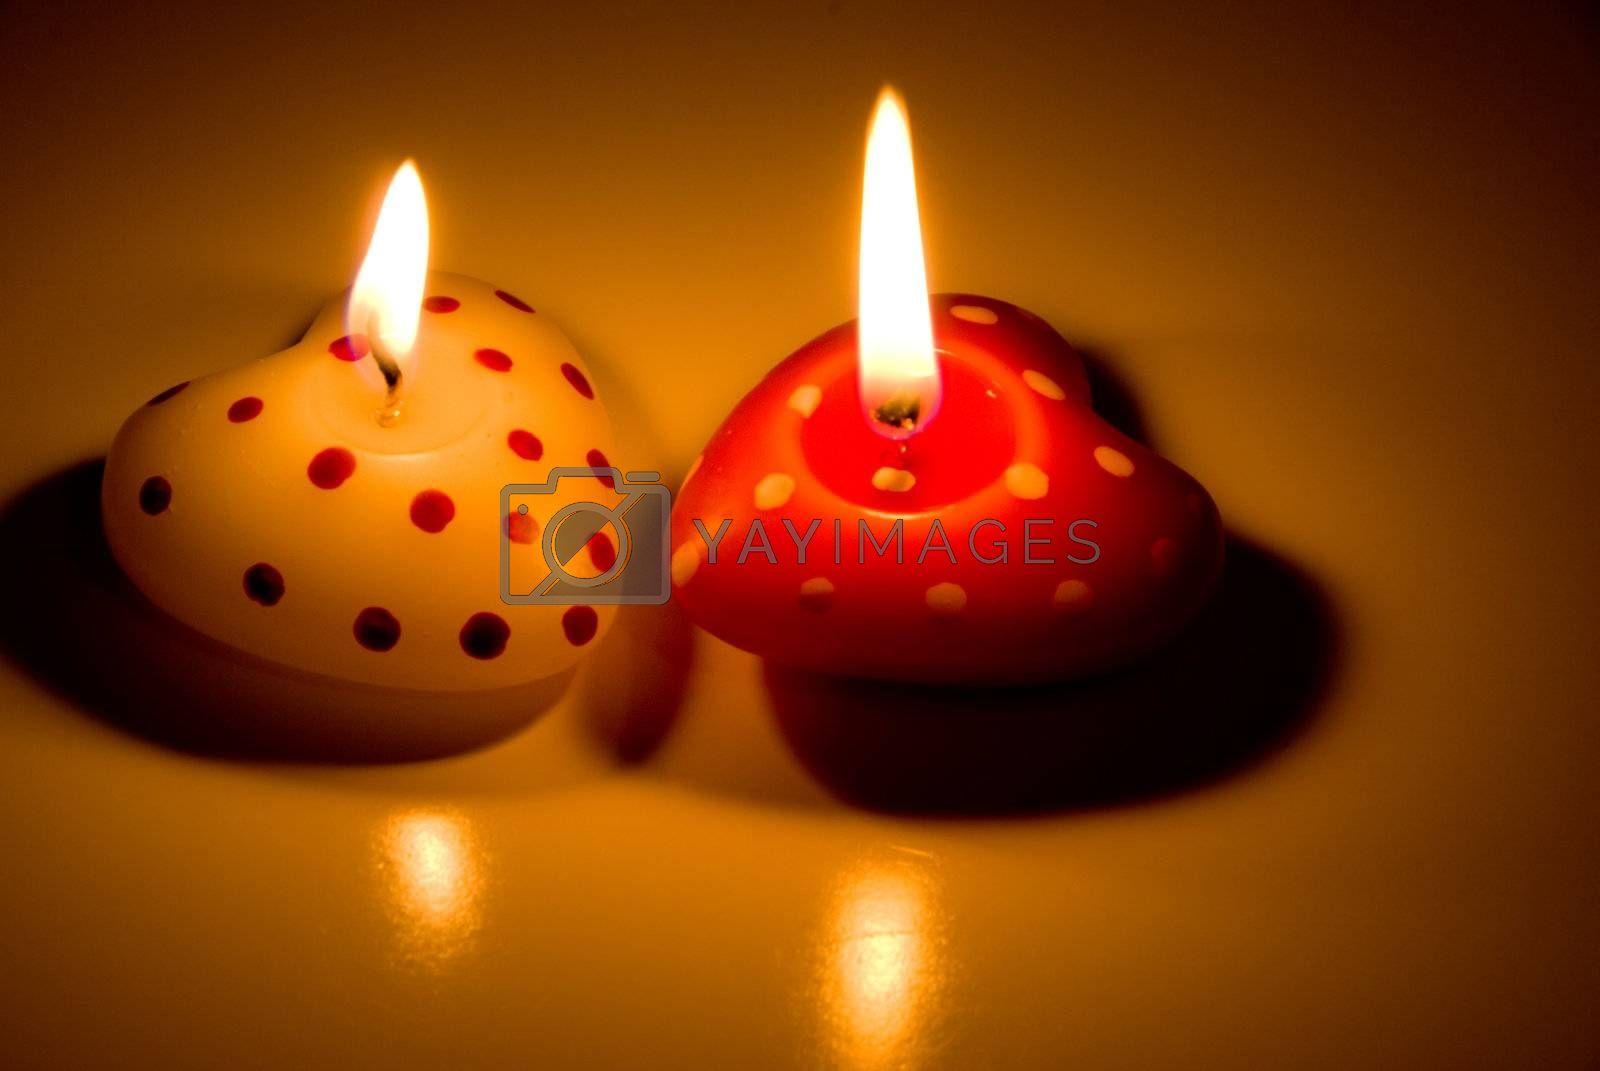 A Heart Shaped Candle decorations for Valentines day.